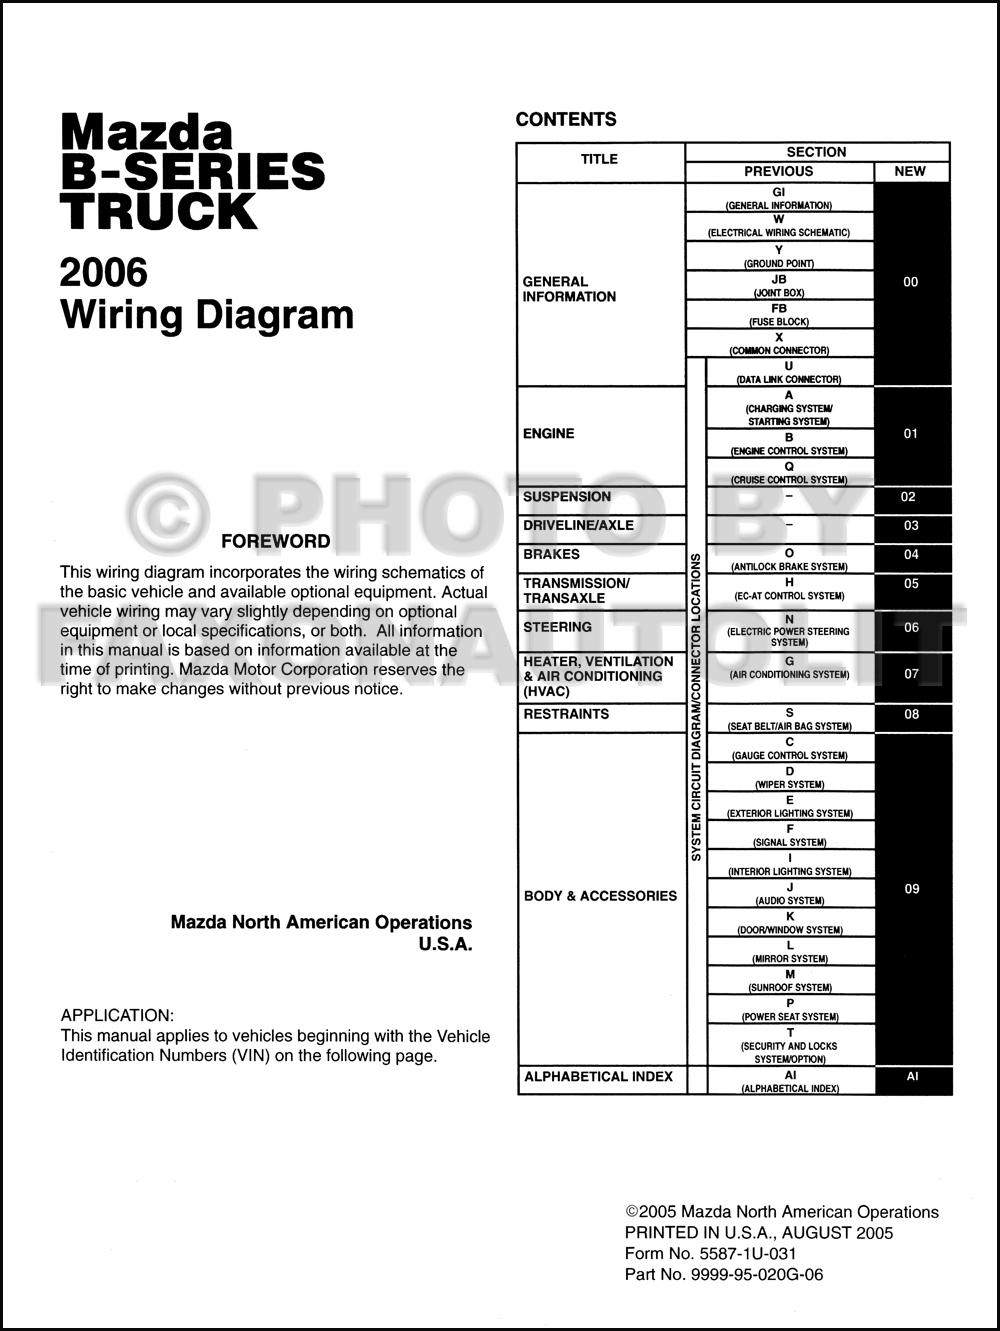 ... Wiring Diagram Manual Original B2300 B3000 B4000. click on thumbnail to  zoom